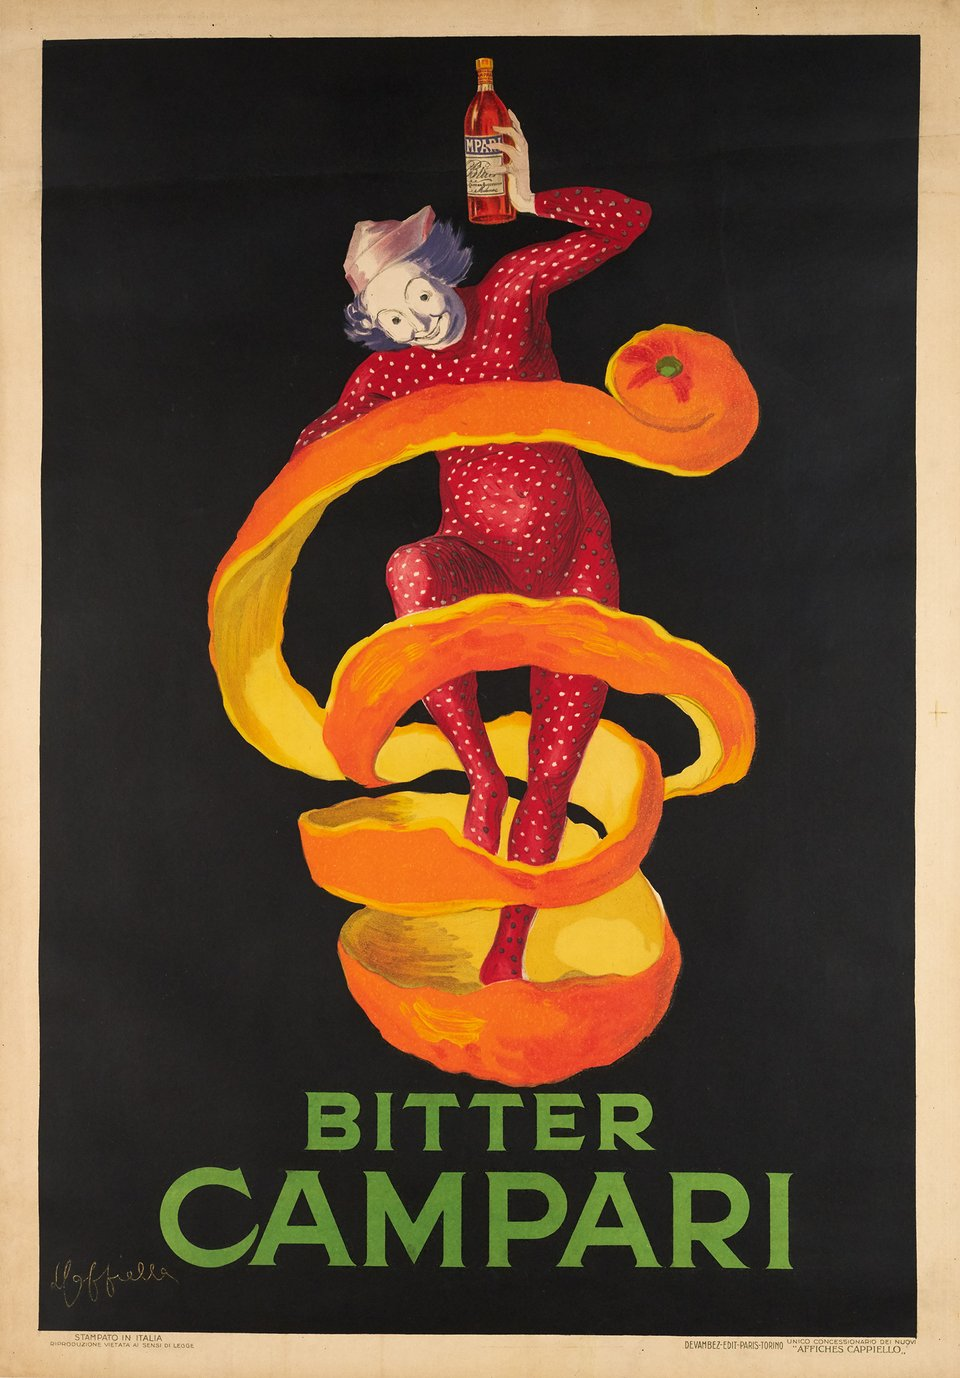 Campari. Bitter Campari, the medium Orange Peel (Jester) – Vintage poster – Leonetto CAPPIELLO – 1921